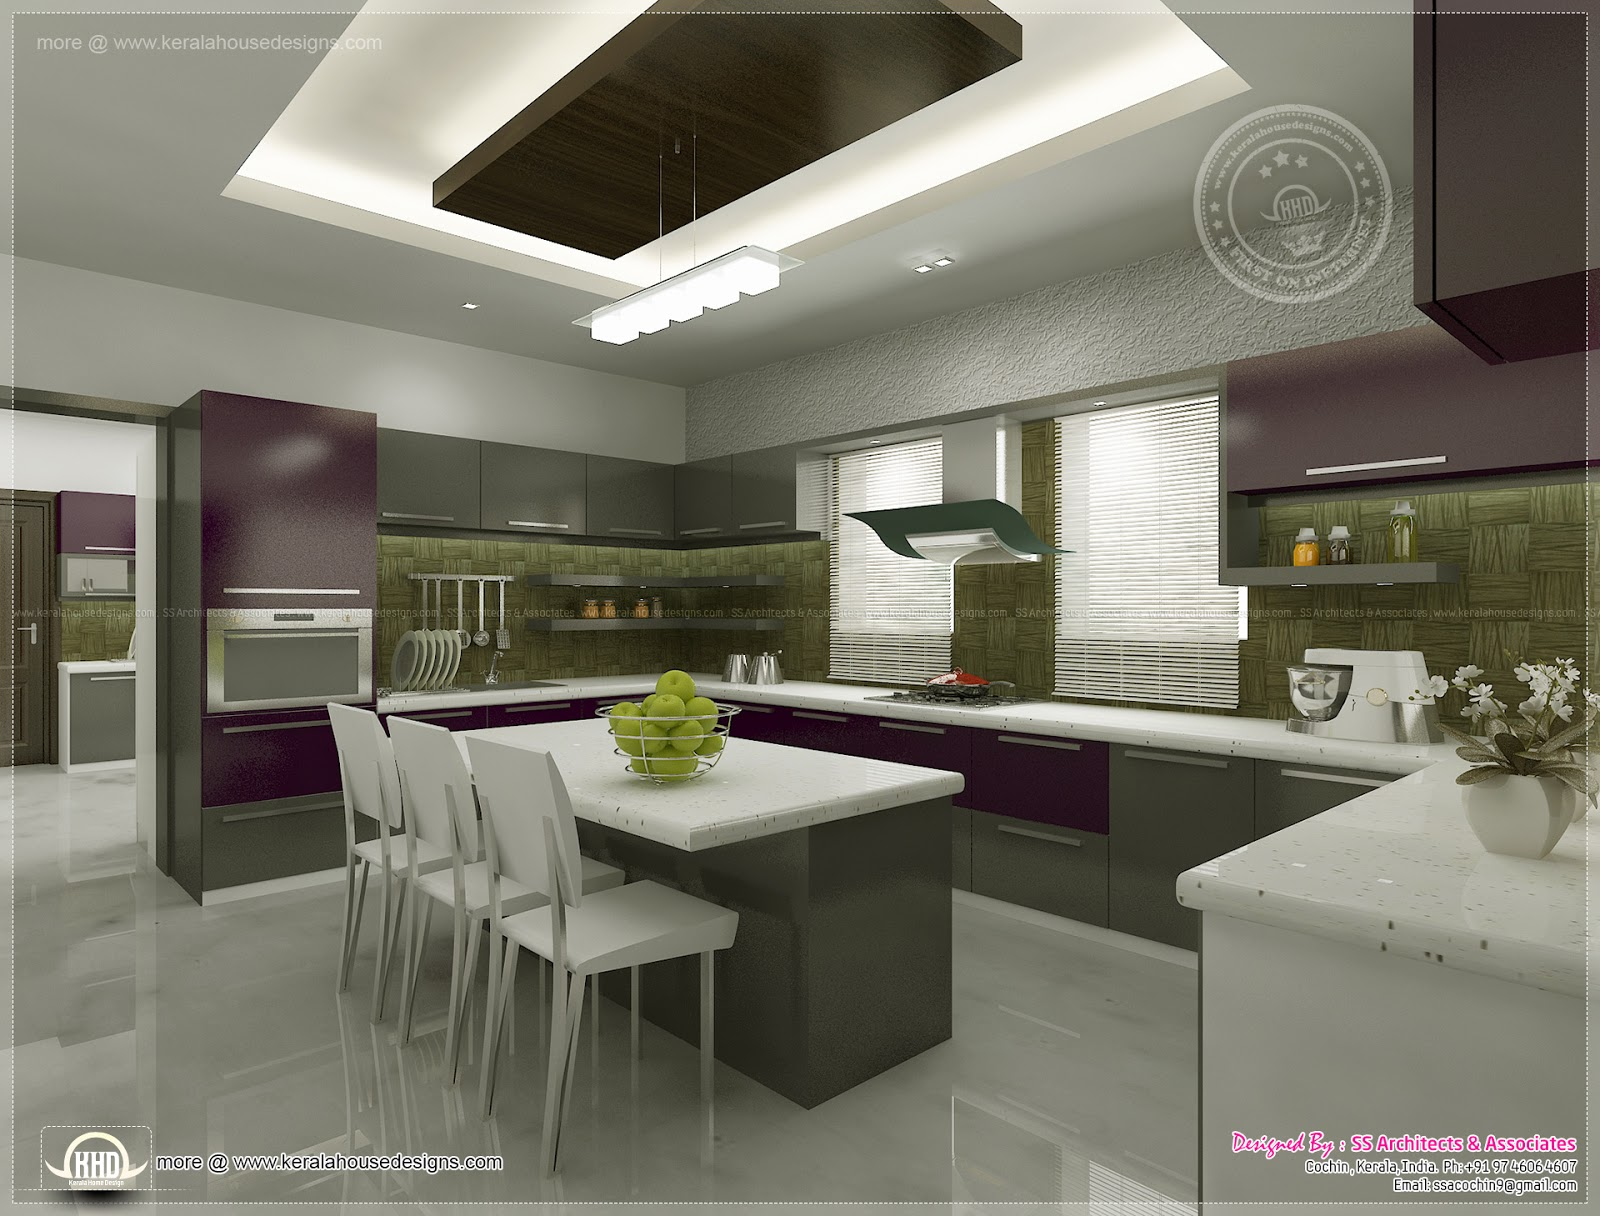 Kitchen interior views by ss architects cochin kerala for Kitchen ideas interior